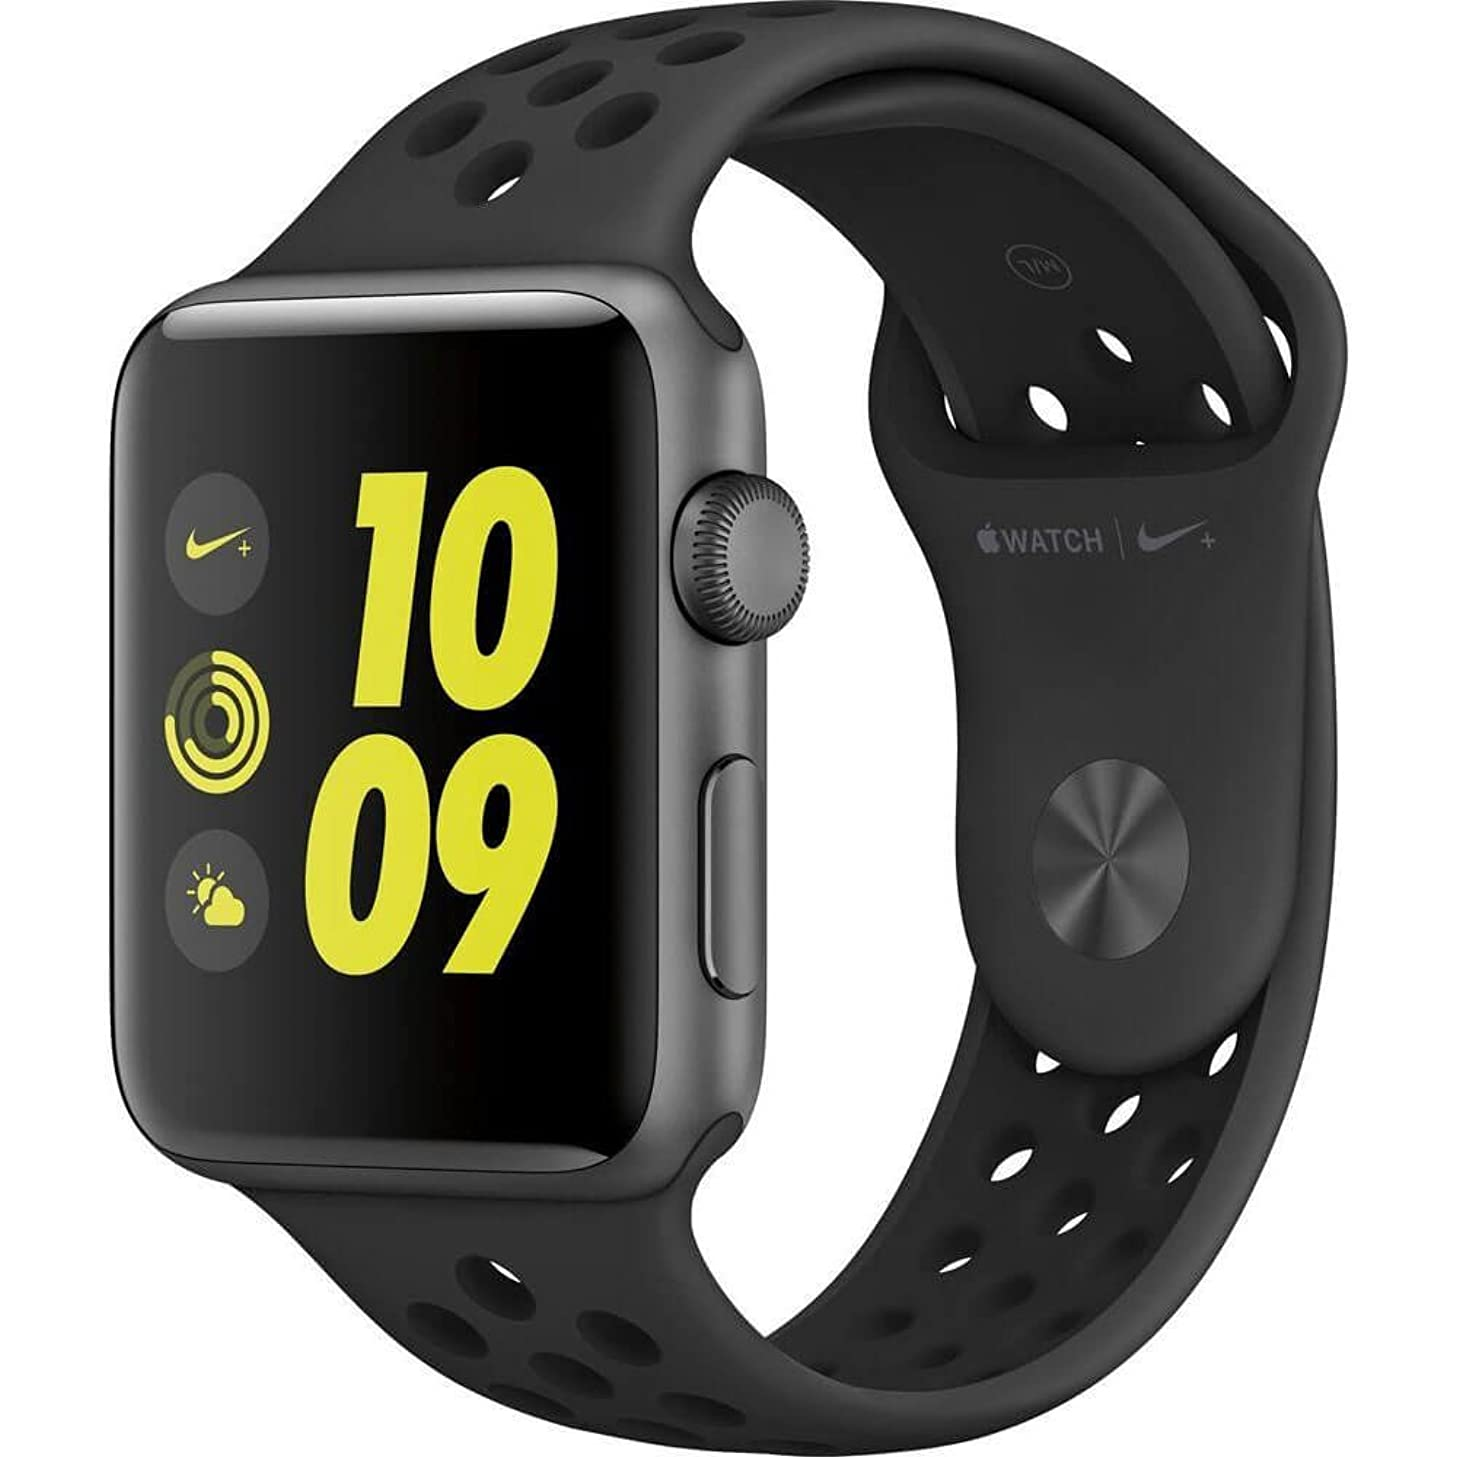 Apple Watch Nike+ Series 2 42mm Space Gray Aluminum Case Anthracite/Black Nike Sport Band (Renewed)